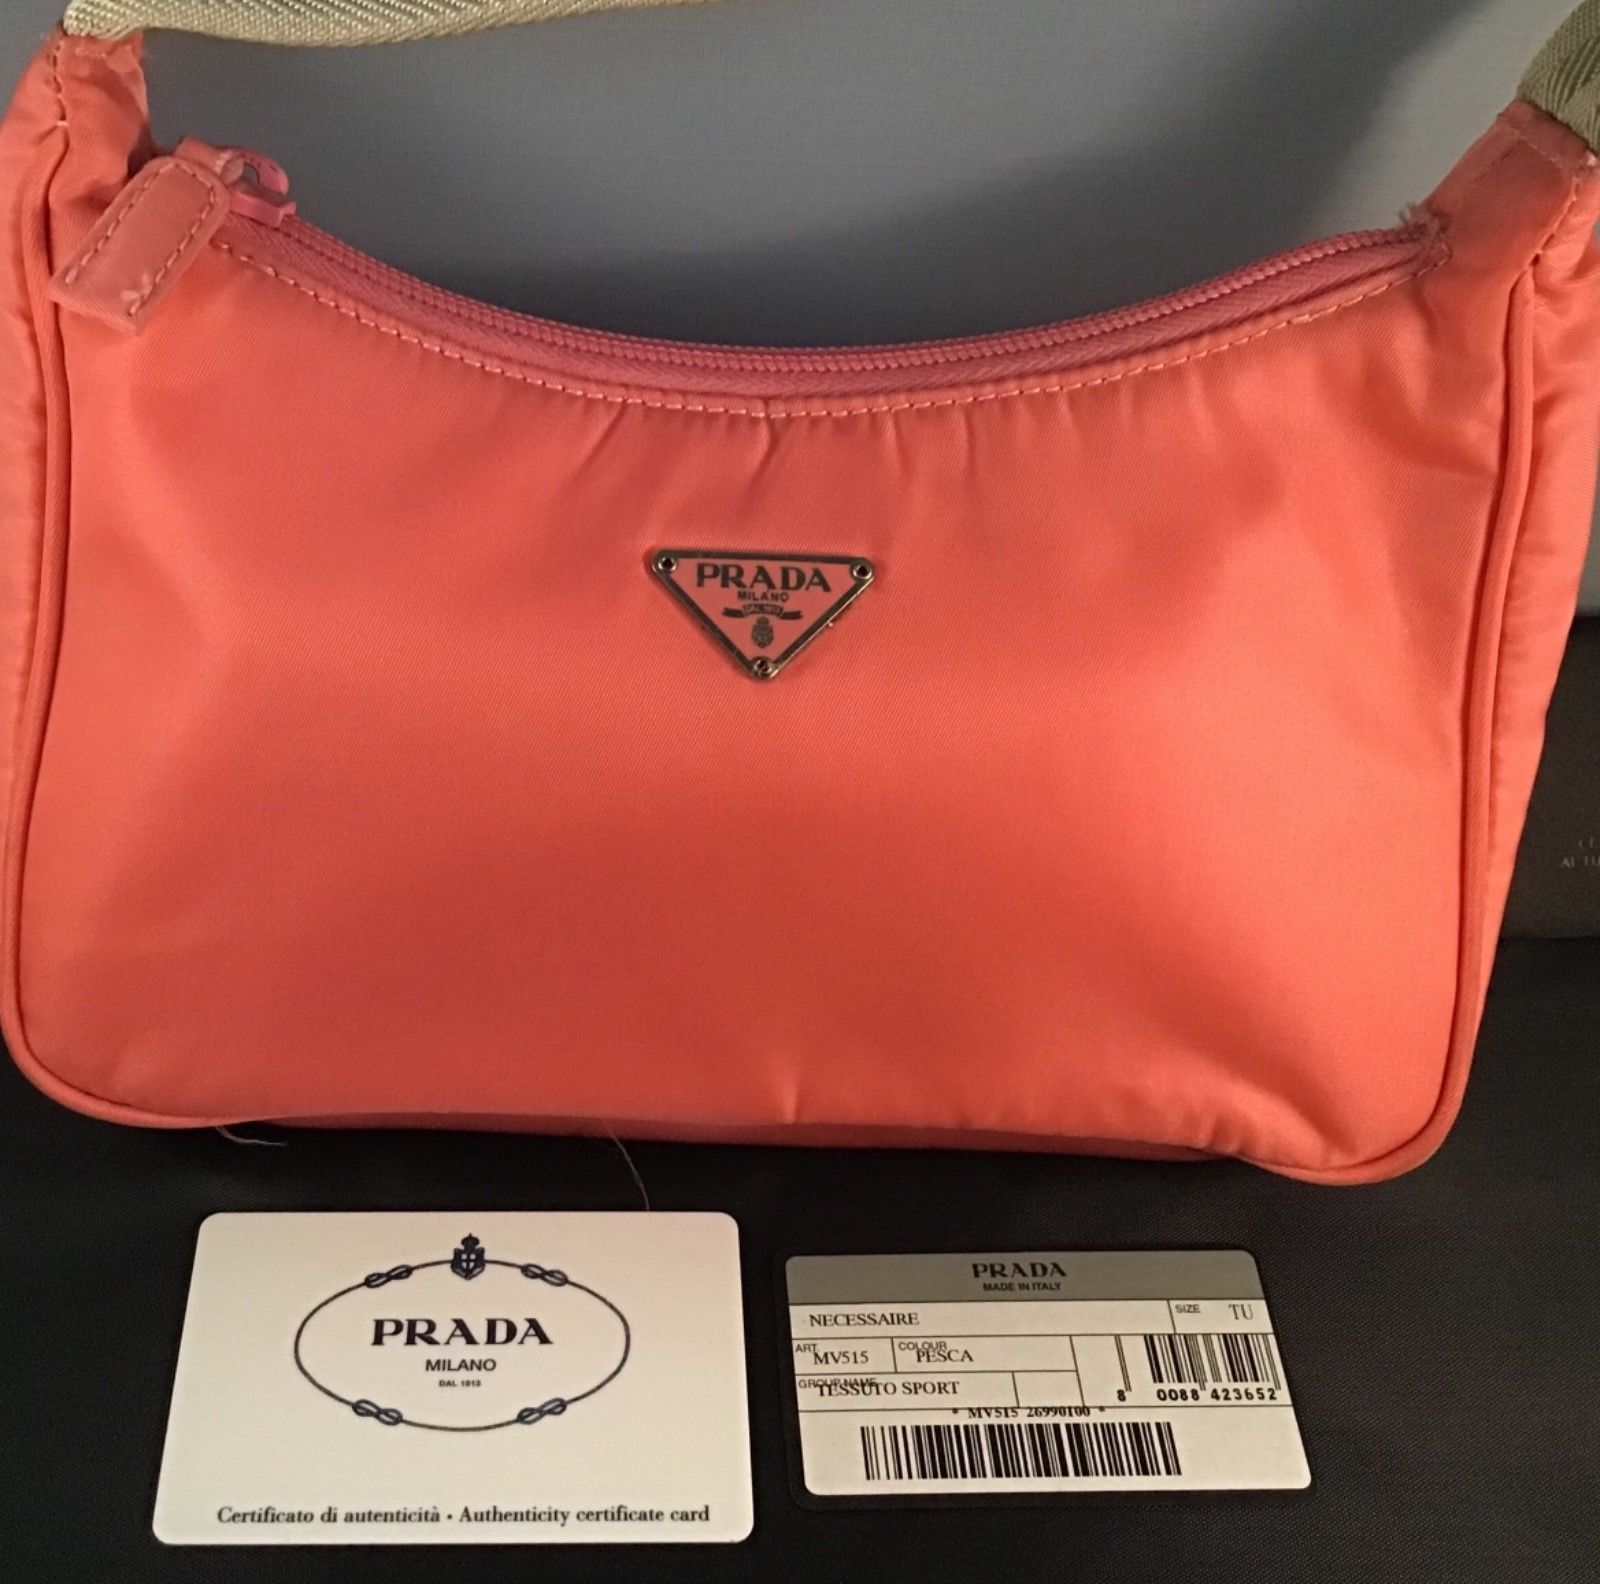 6bcbcac45433da Authentic Vintage Prada Tessuto Sport bag Pesca (coral/ pink) Good Used  Cond.